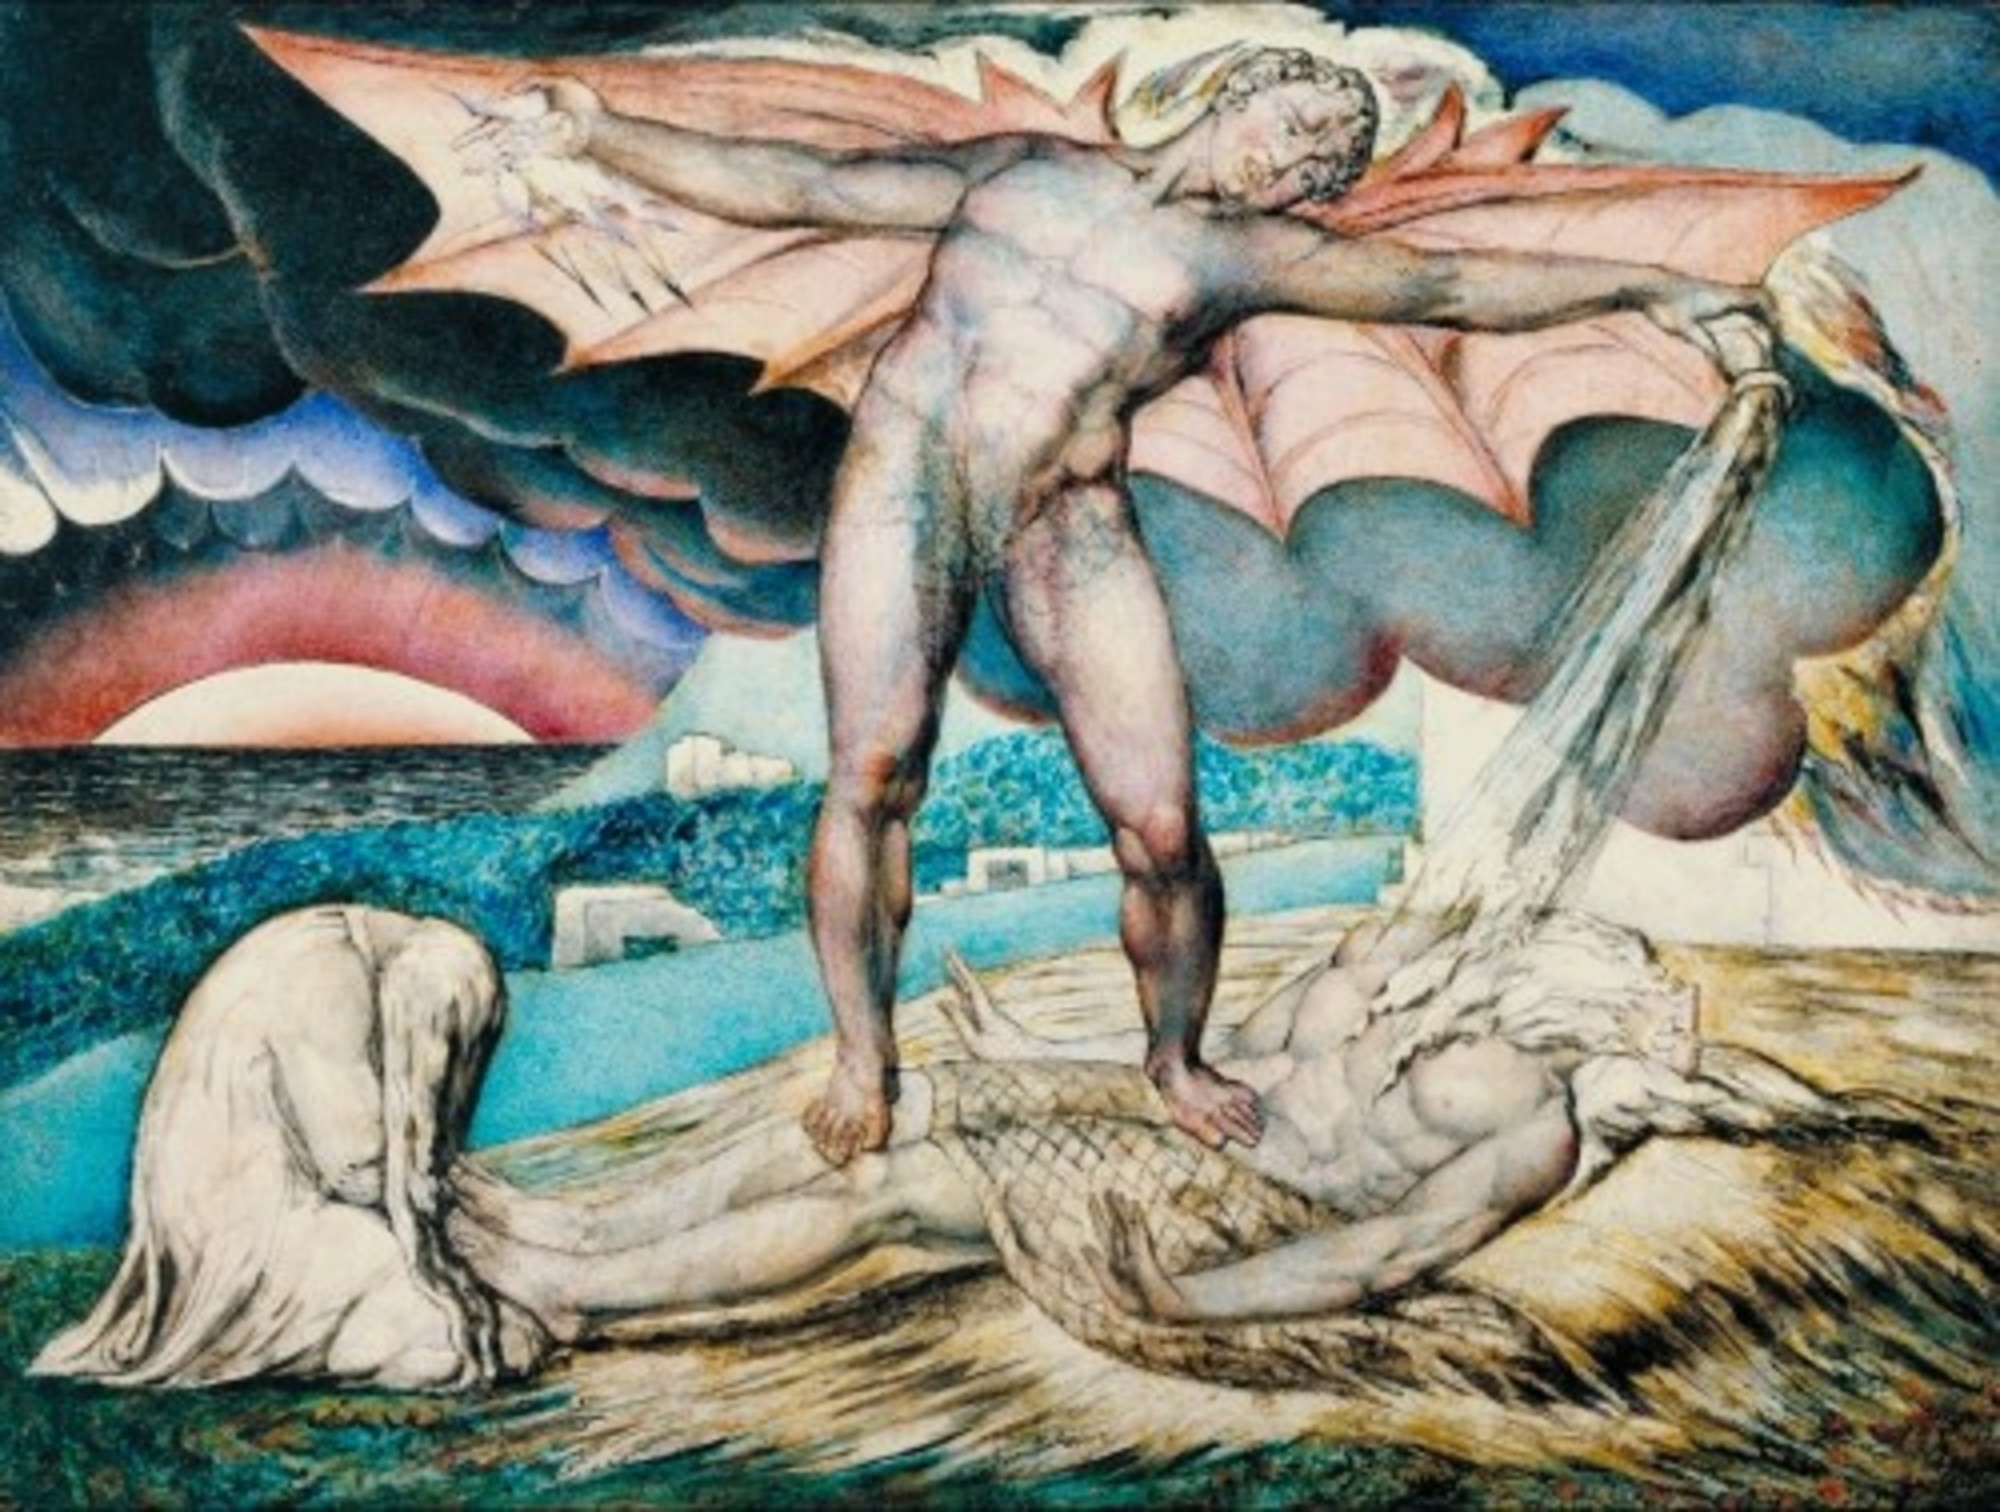 William-Blake---Satan-Smiting-Job-with-Sore-Boils-Tate-Britain.jpg